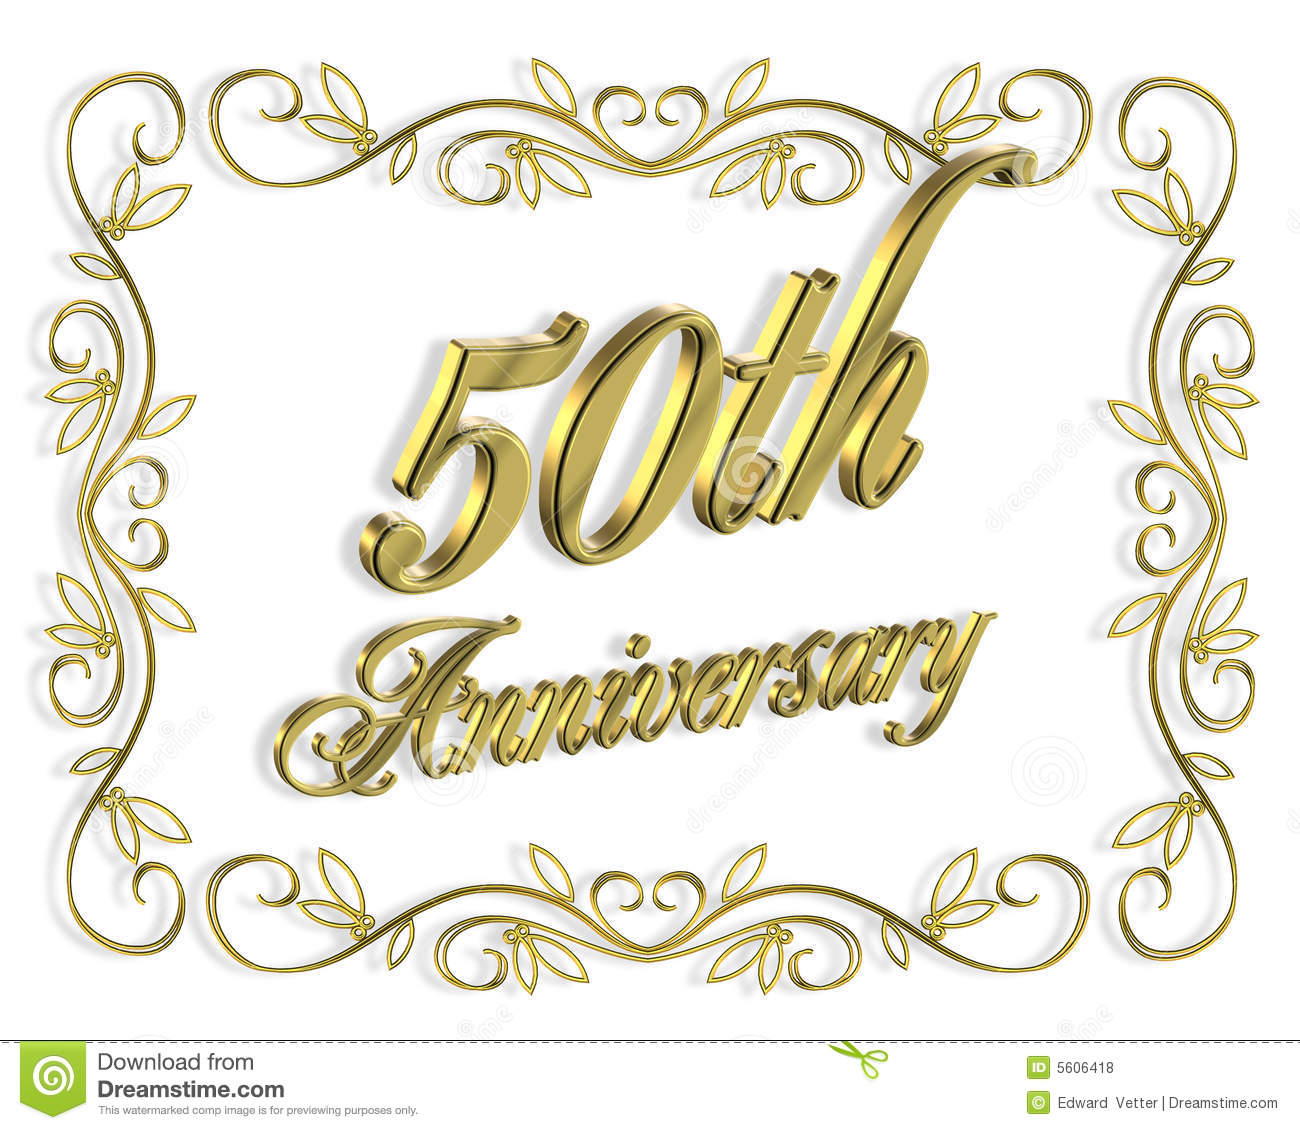 50th anniversary invitation 3d illustration stock illustration